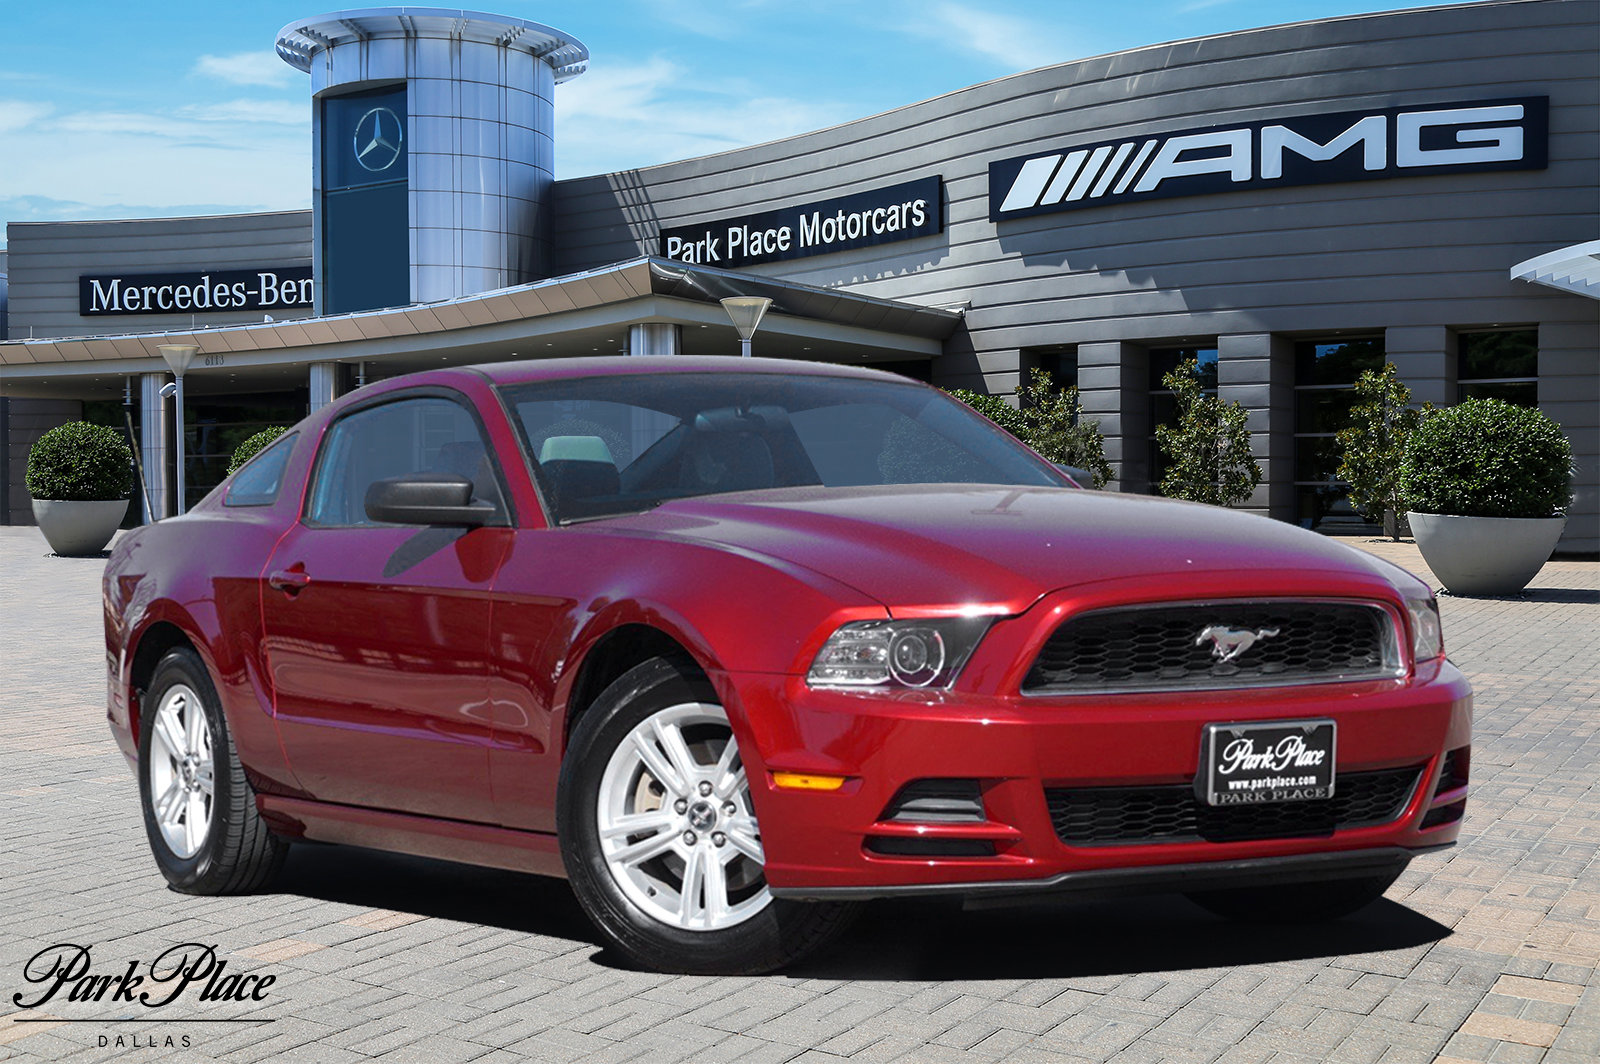 2014 Ford Mustang Coupe image